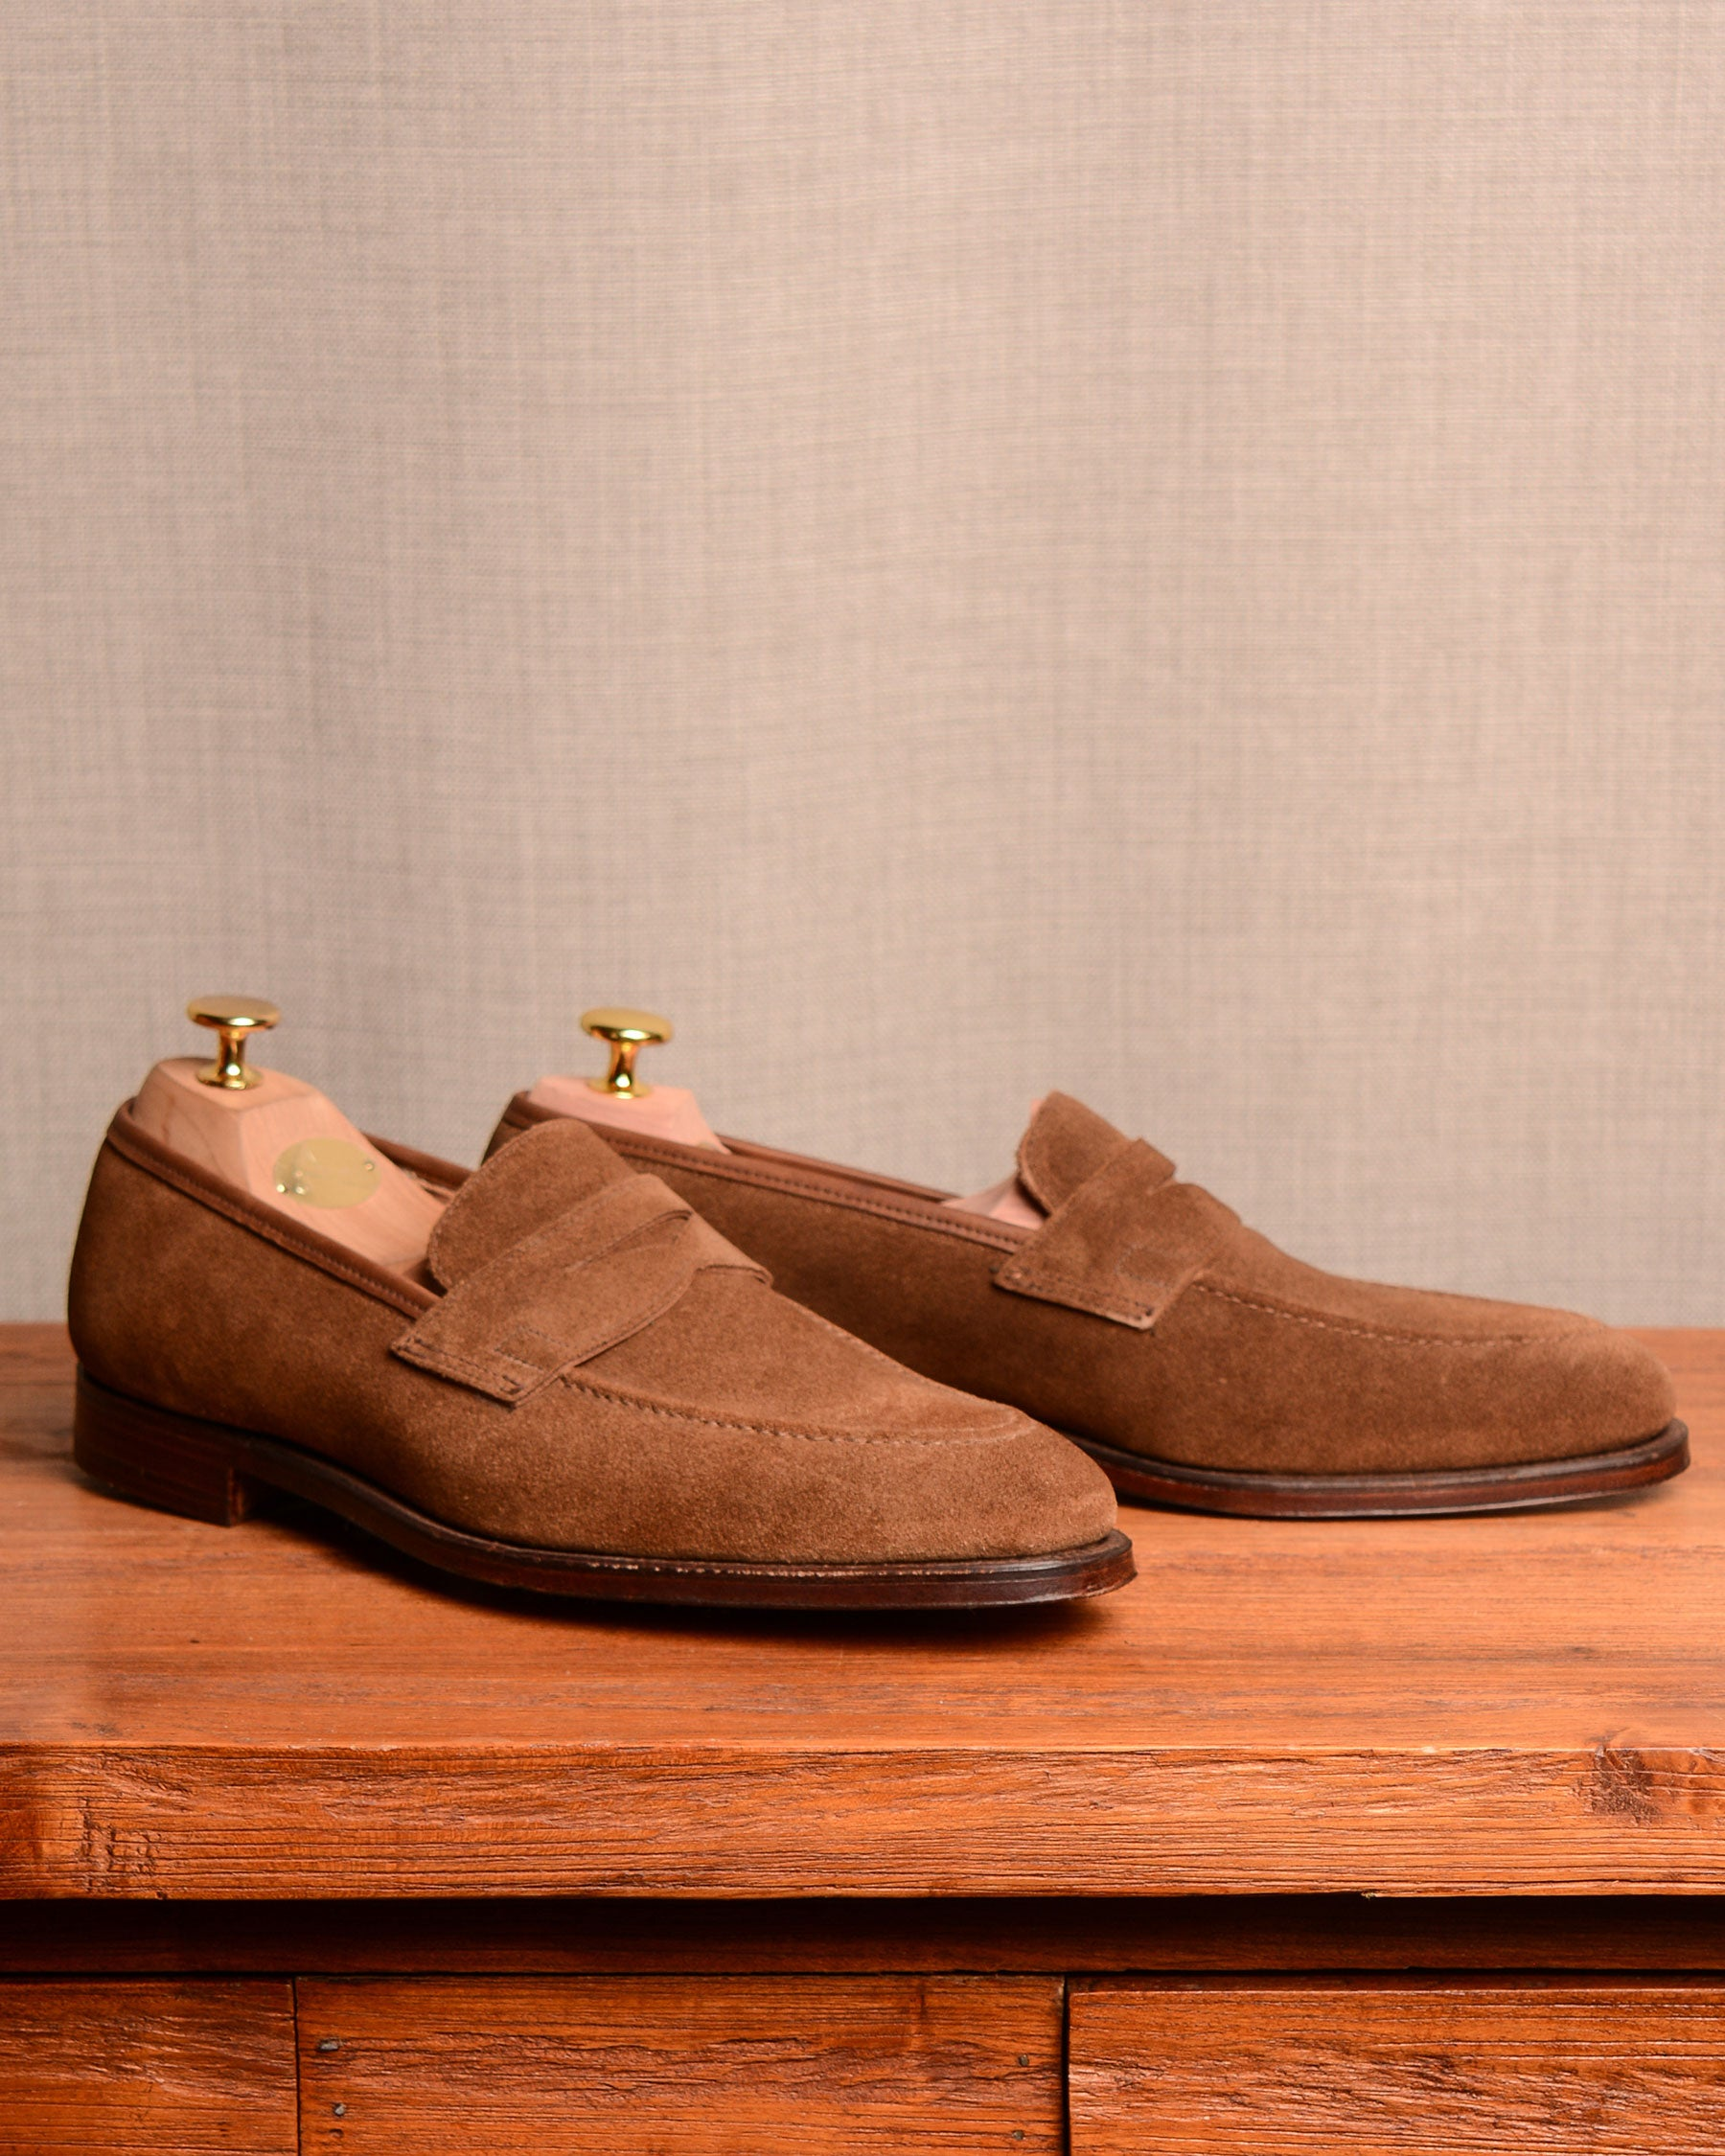 Crockett & Jones Sydney - Snuff Suede